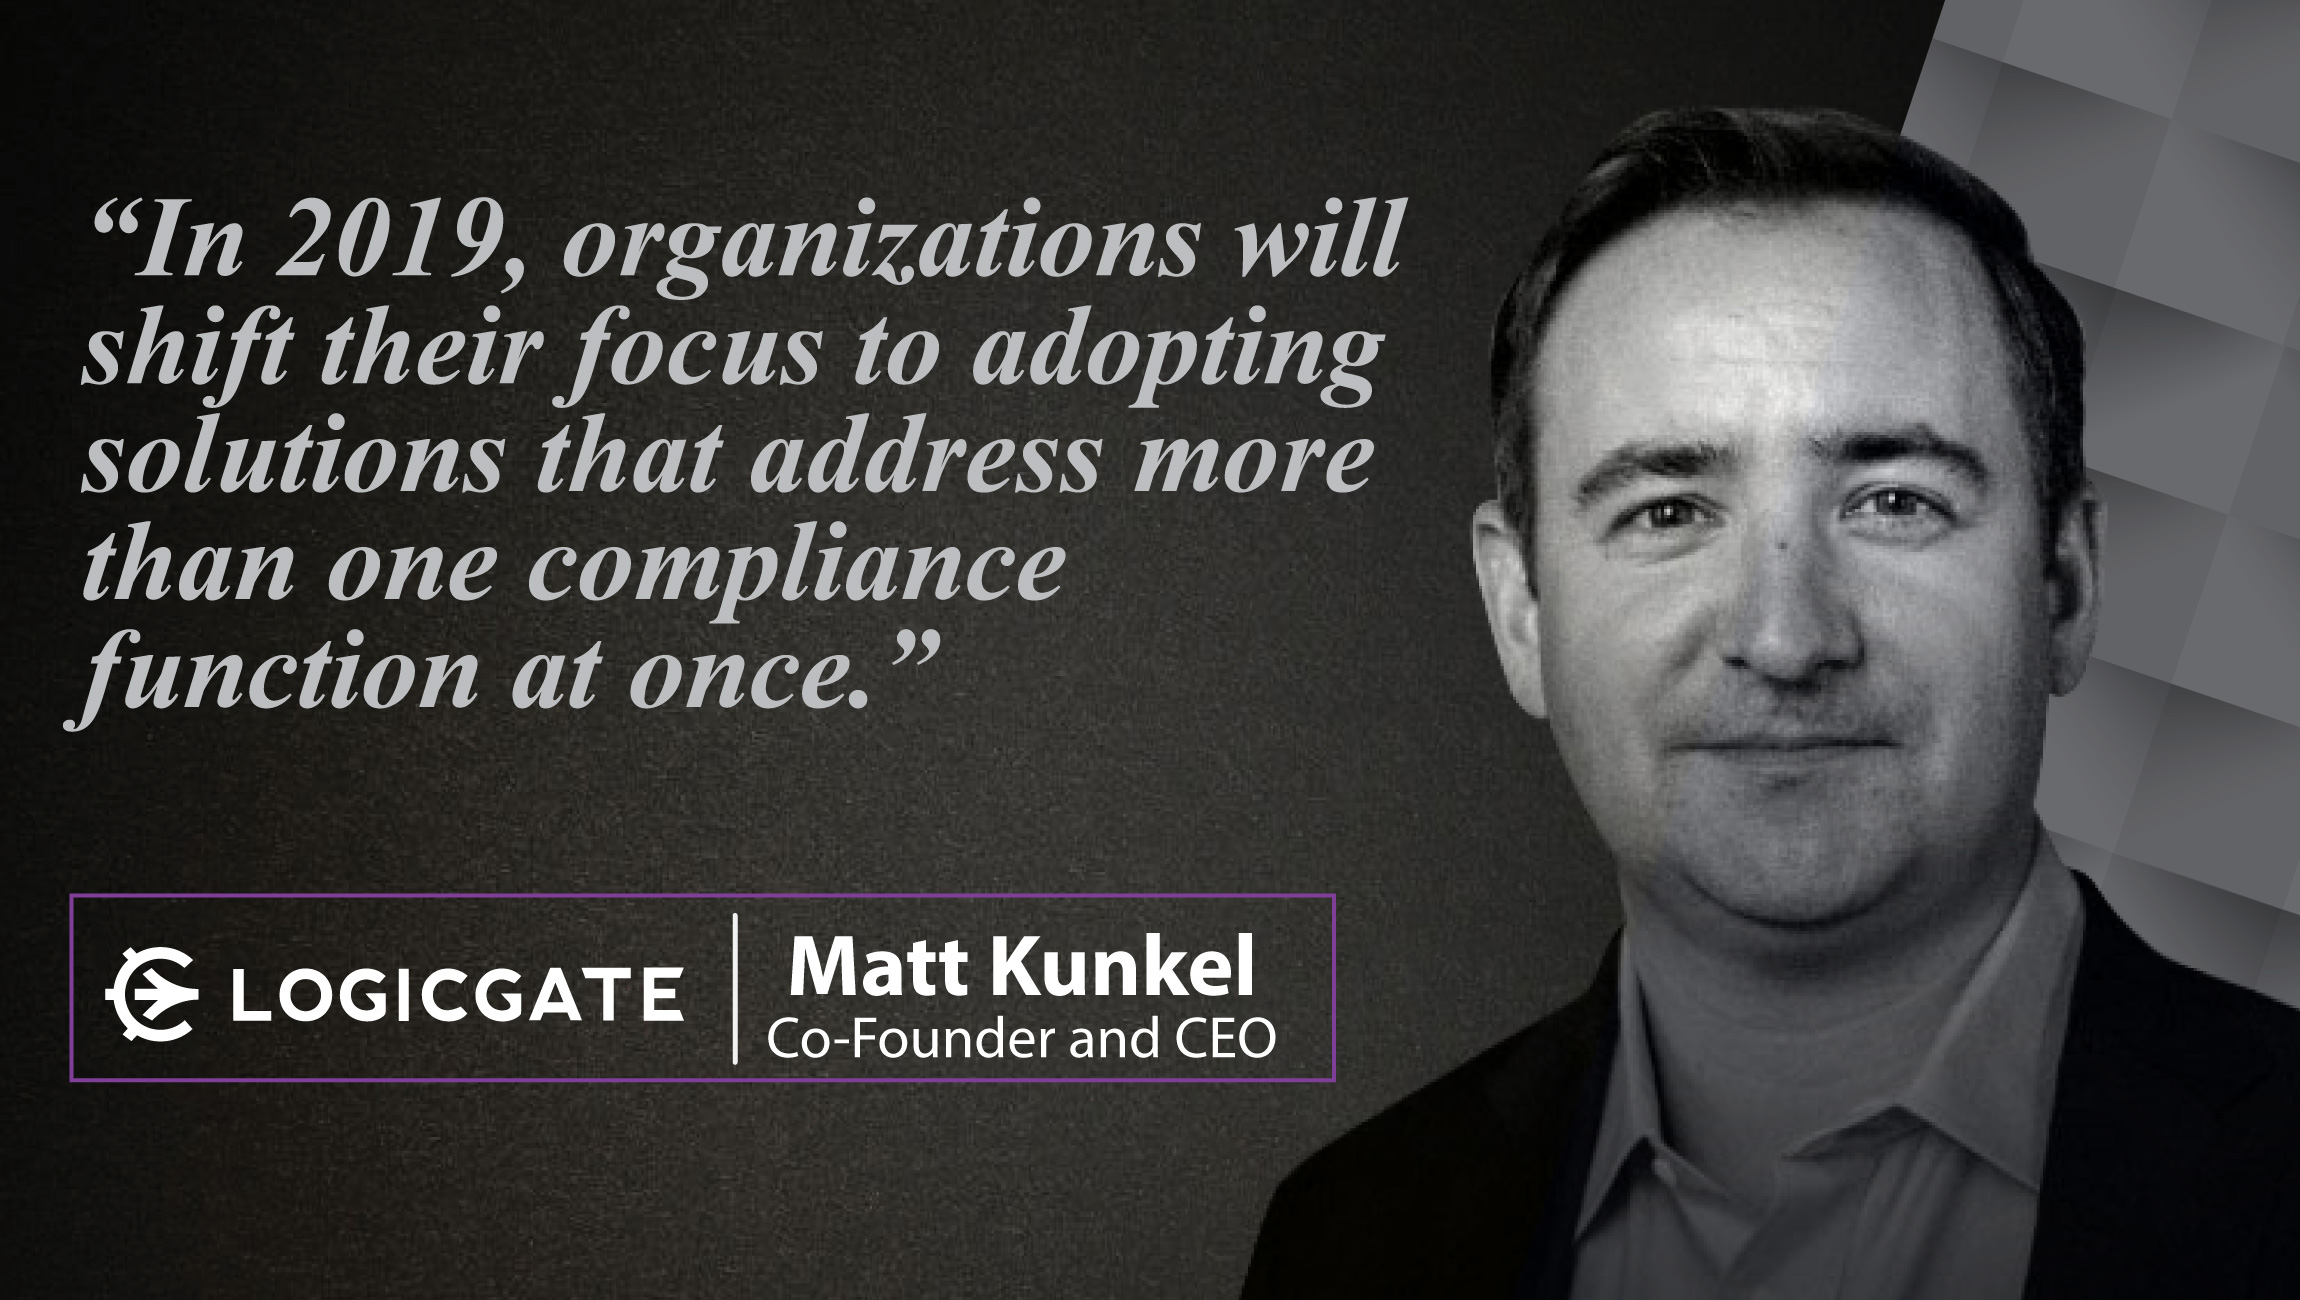 Matt Kunkel, LogicGate co-founder and CEO